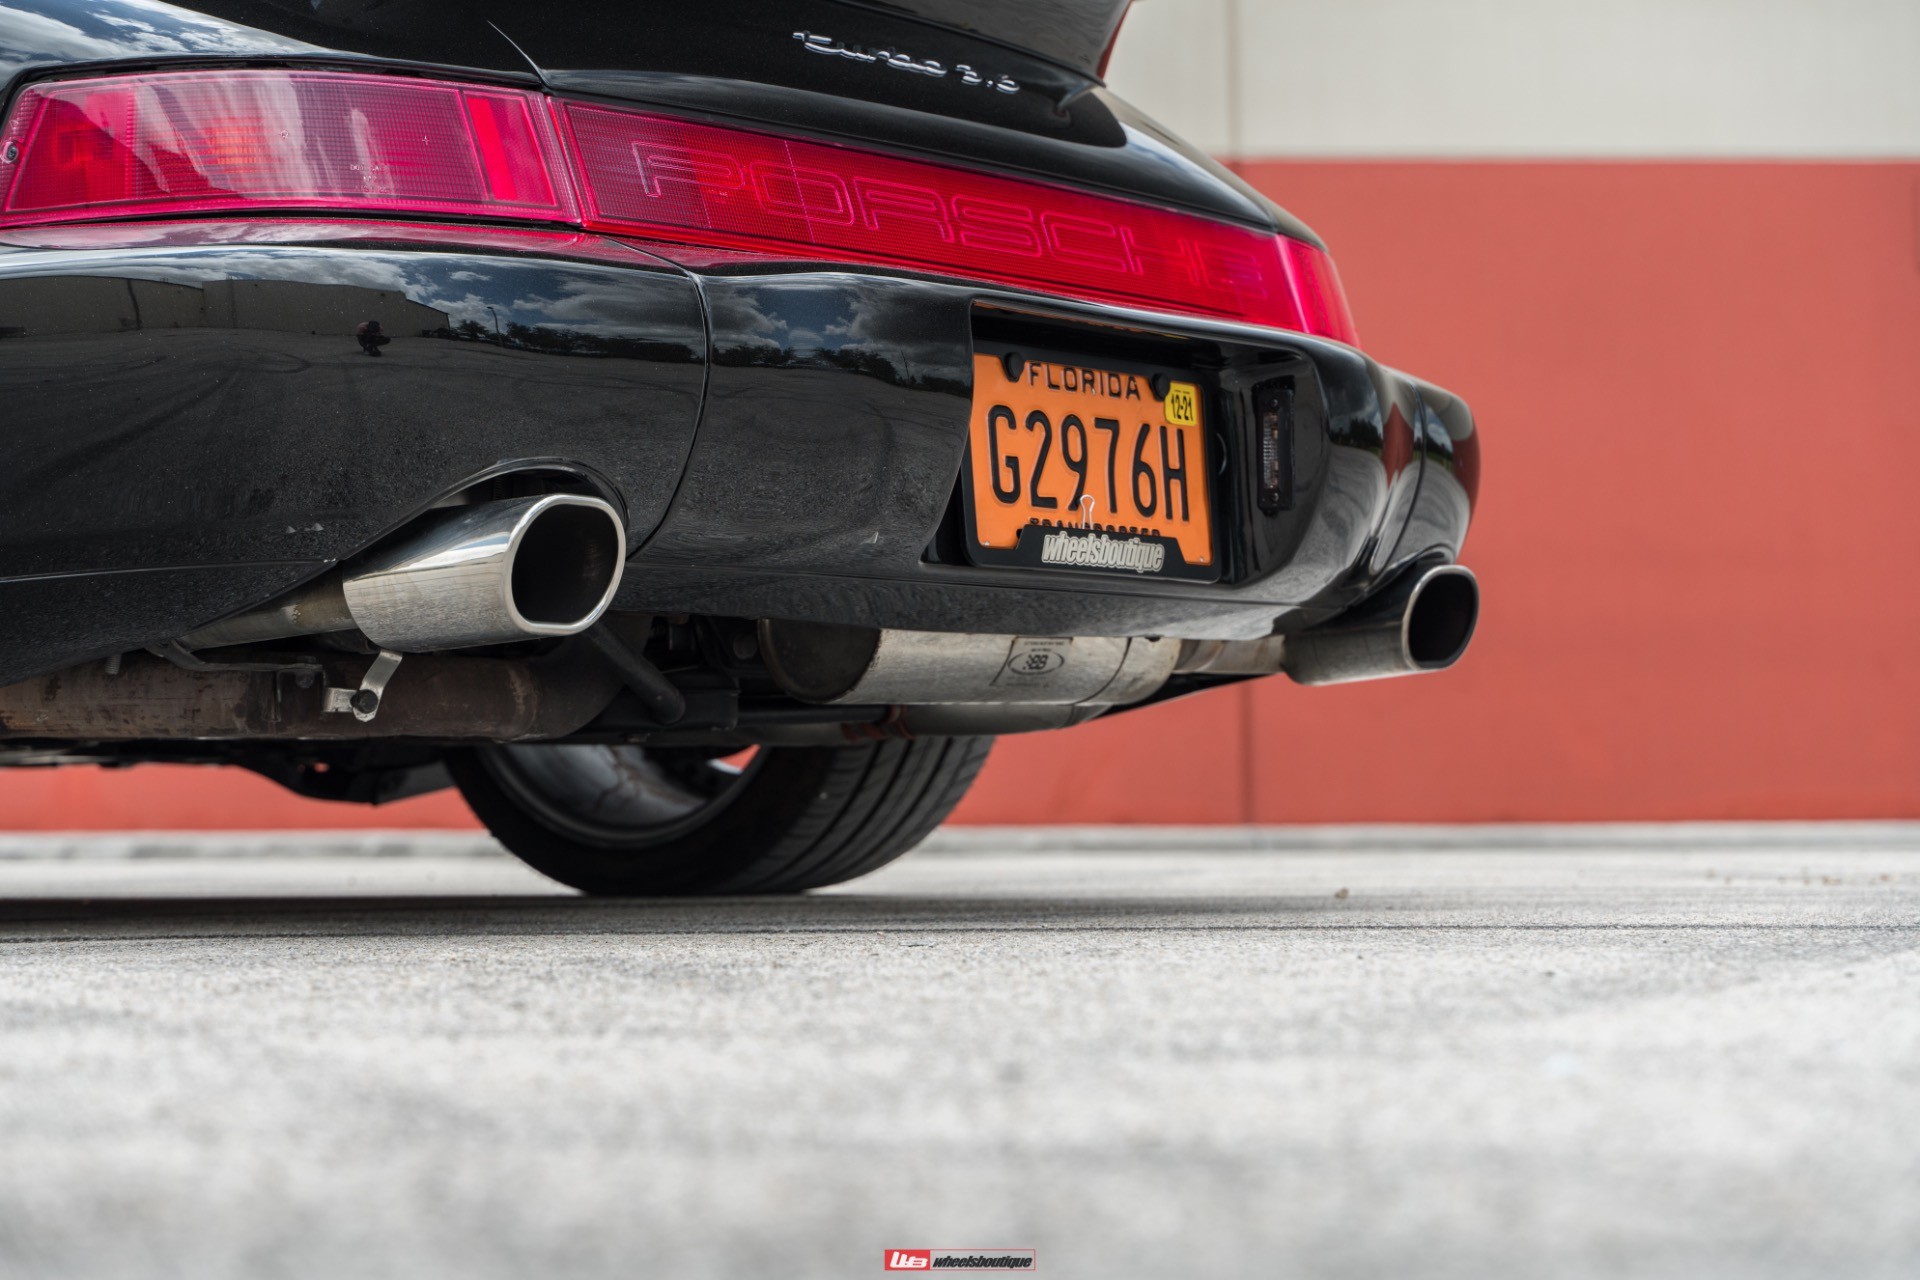 Used-1994-Porsche-911-964-Turbo-36-Coupe-ULTRA-RARE-AND-FRESHLY-SERVICED-COLLECTOR-GRADE